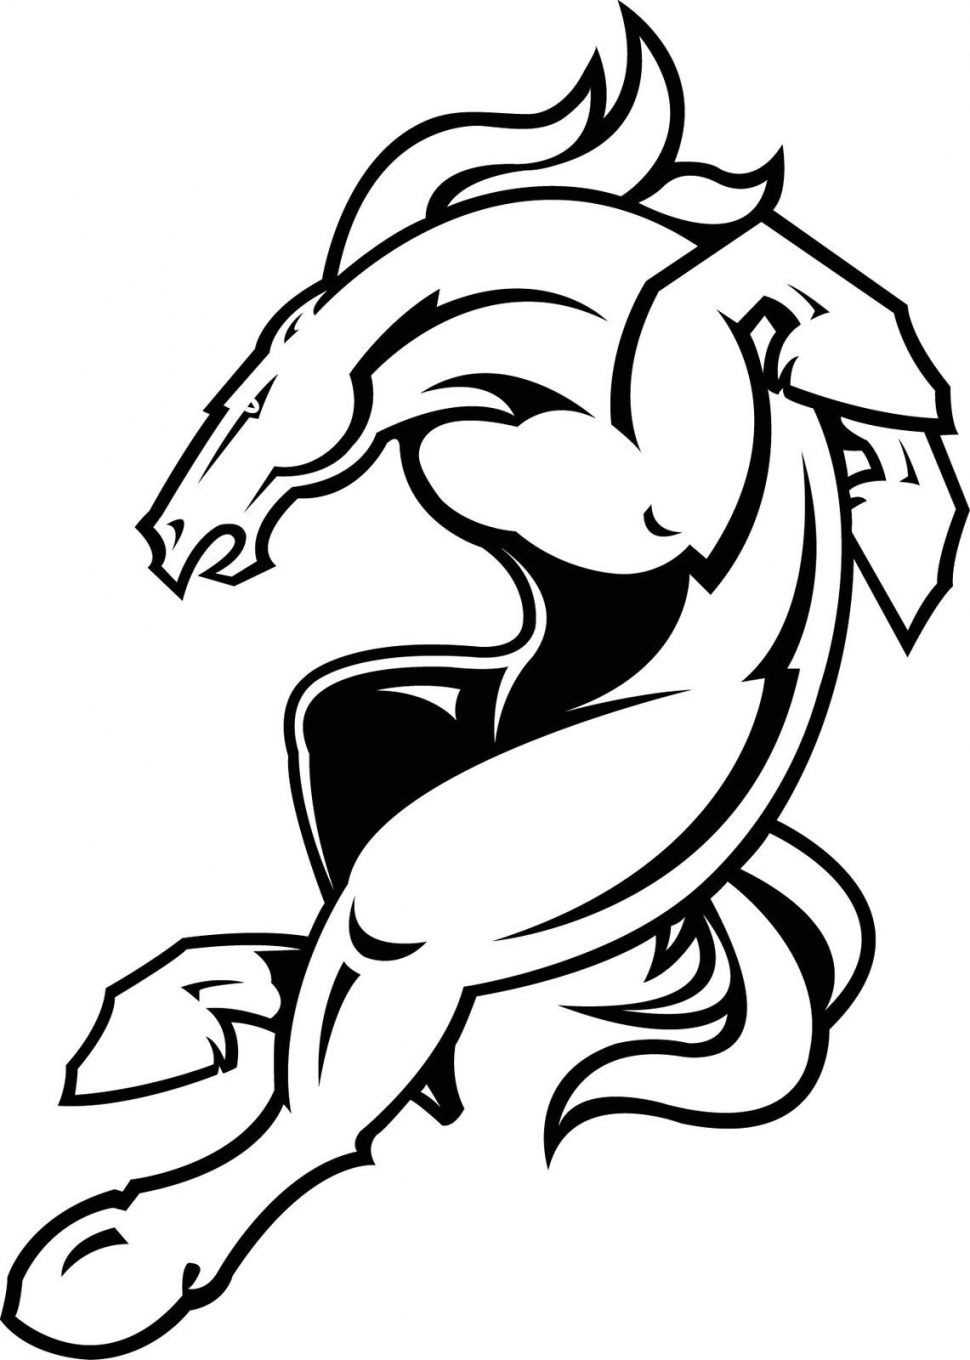 svg black and white download bronco drawing phone #132281934